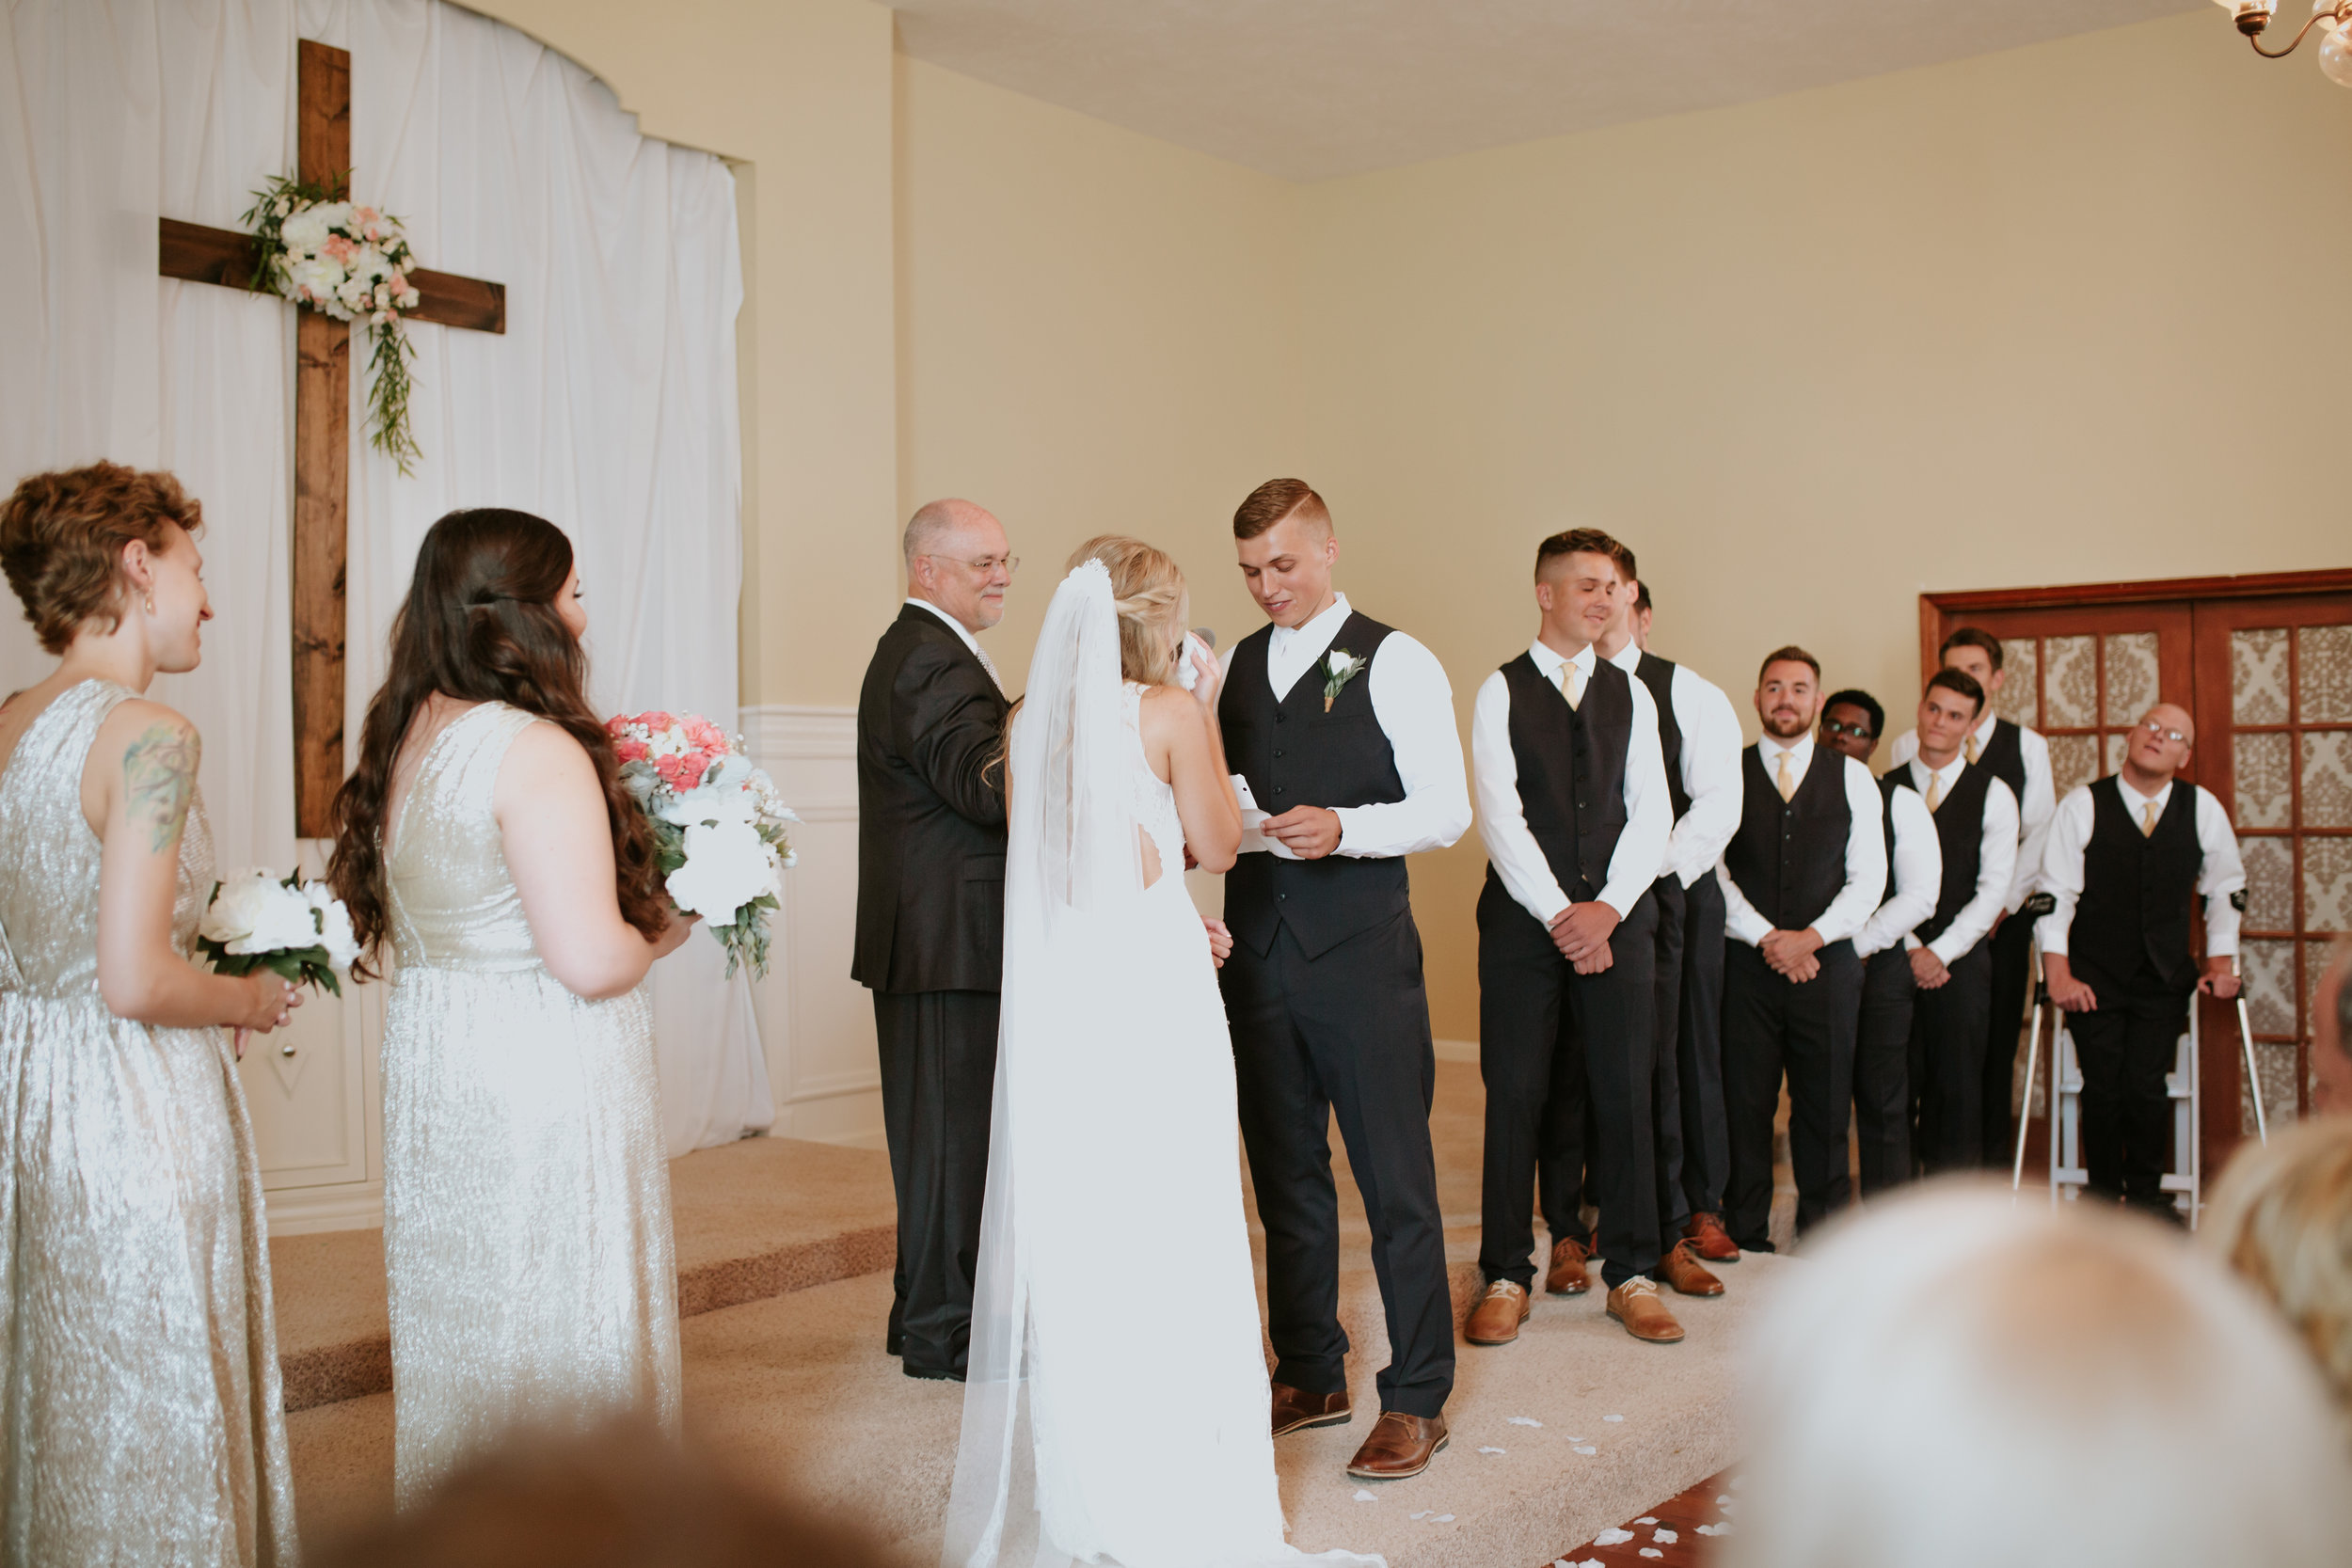 heritage-chapel-st-louis-wedding-photographer-39